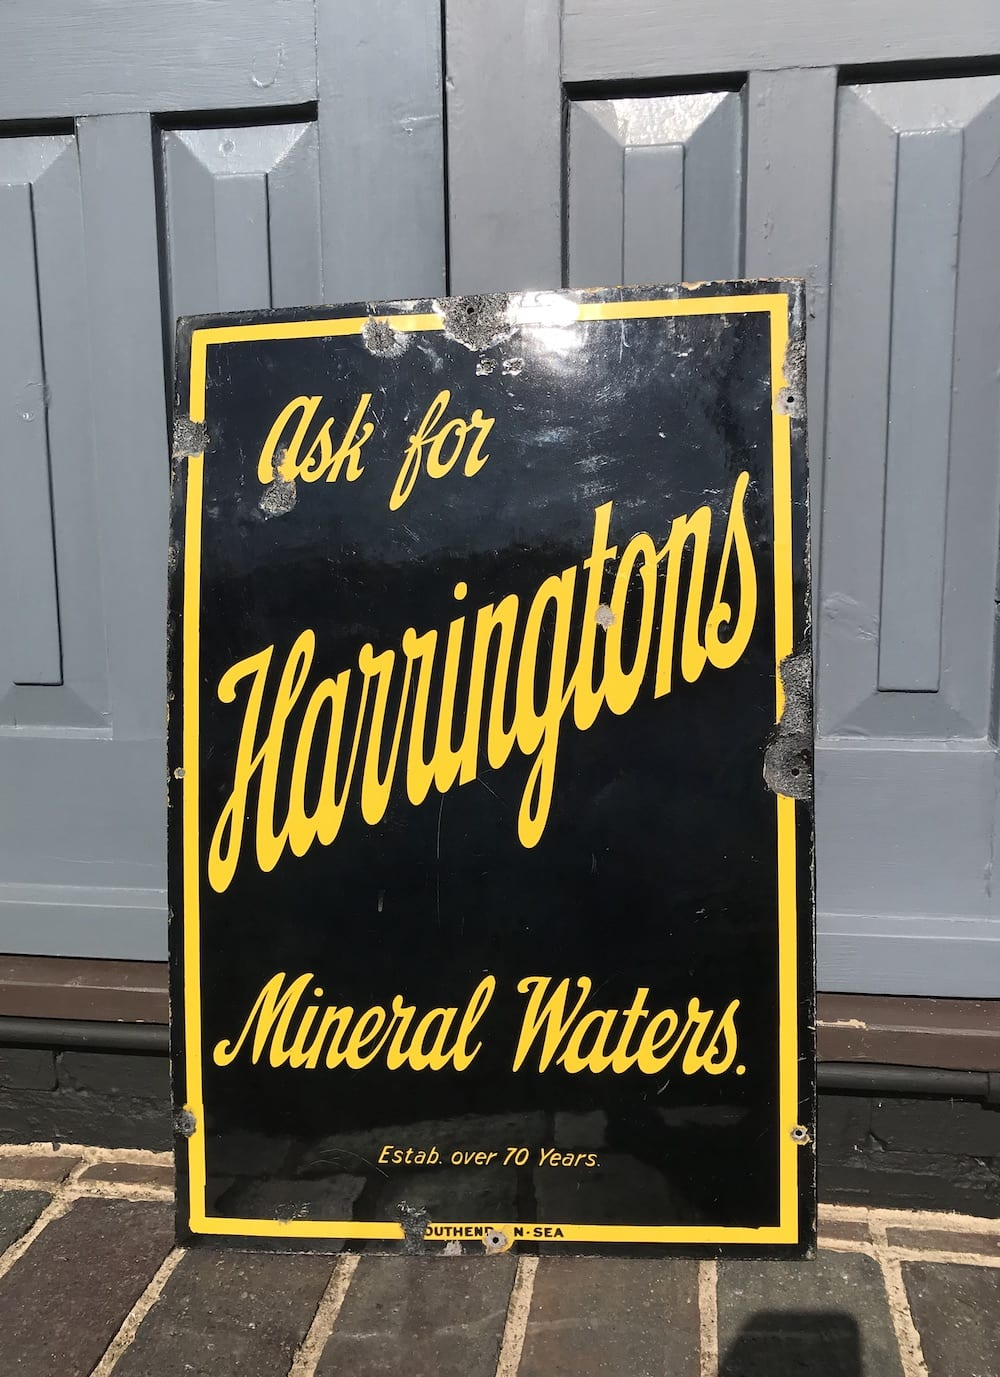 ORIGINAL HARRINGTONS MINERAL WATERS ENAMEL SIGN. - Vintage Motoring UK